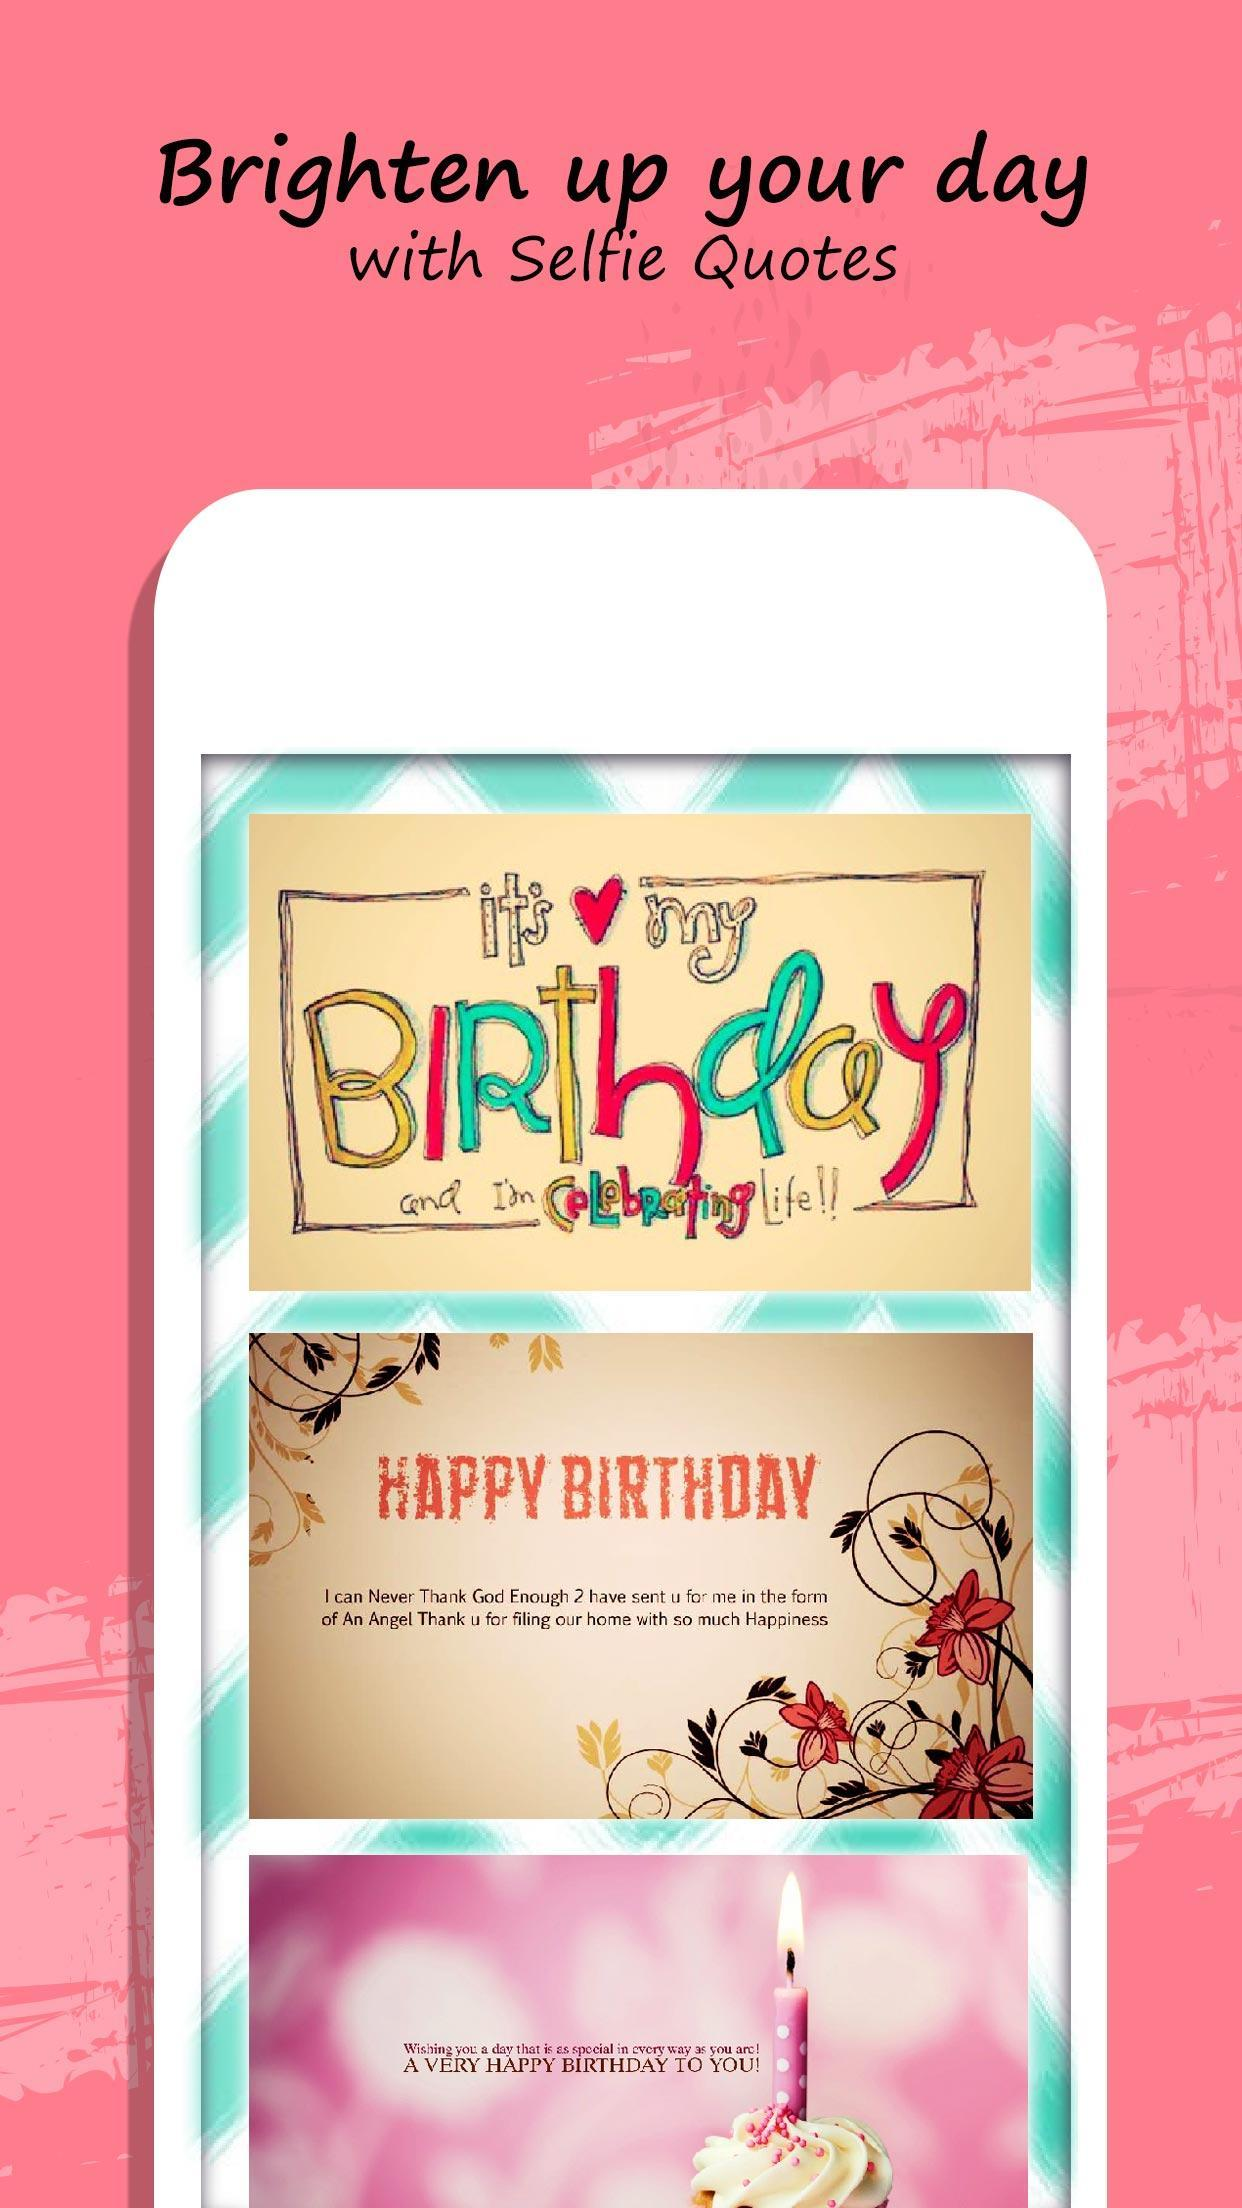 Insta Birthday Selfie Camera for Android - APK Download